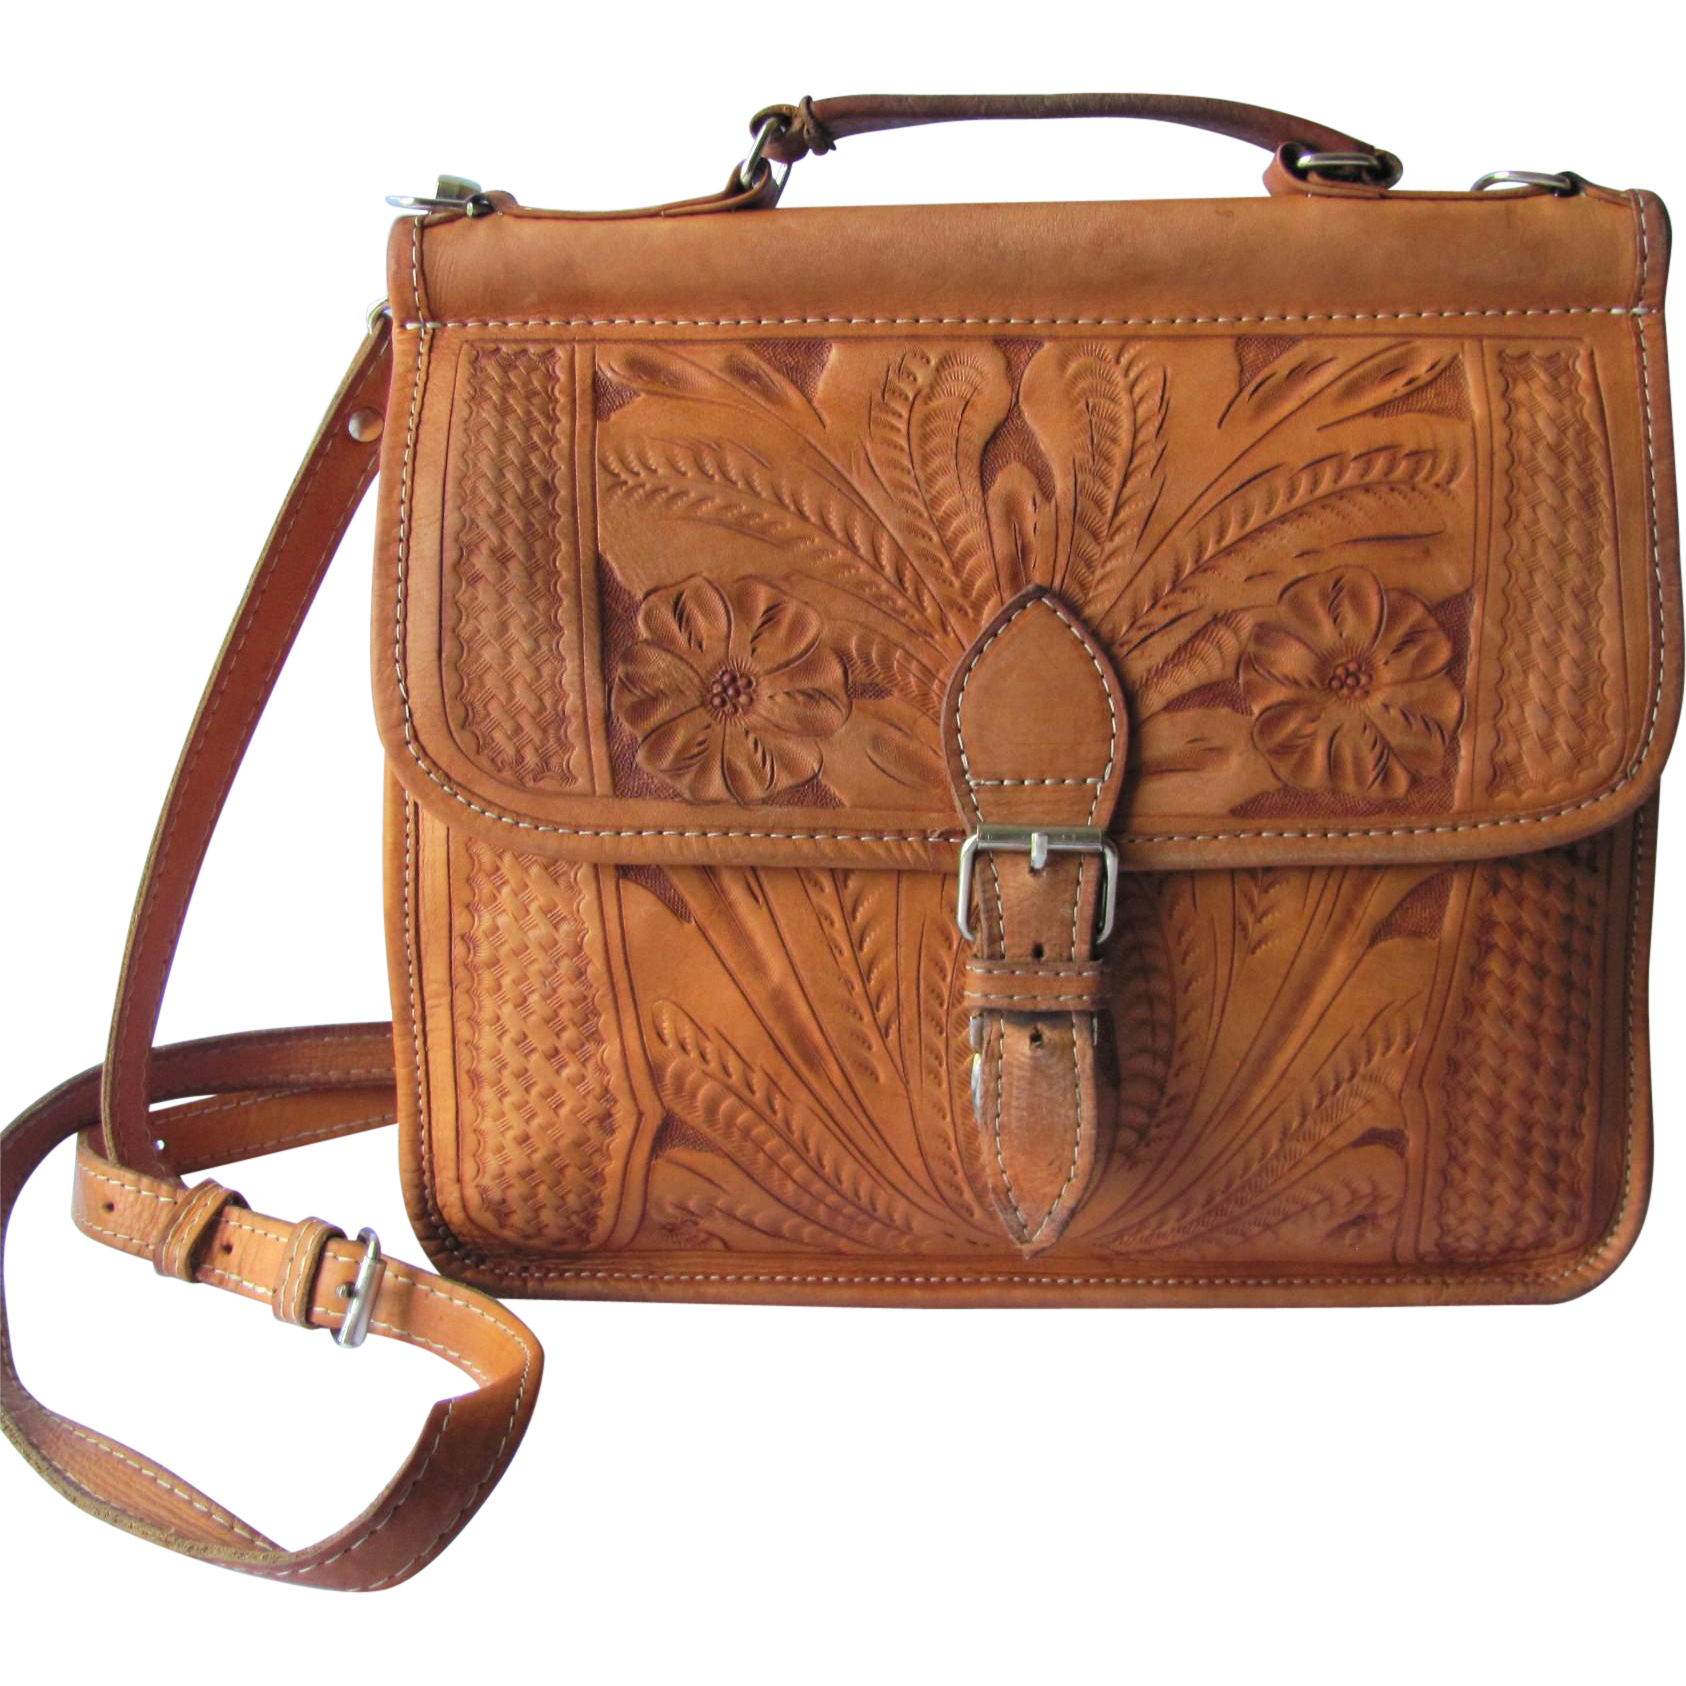 Vintage Hand Tooled Leather Handbag in Caramel Color with Cross ...